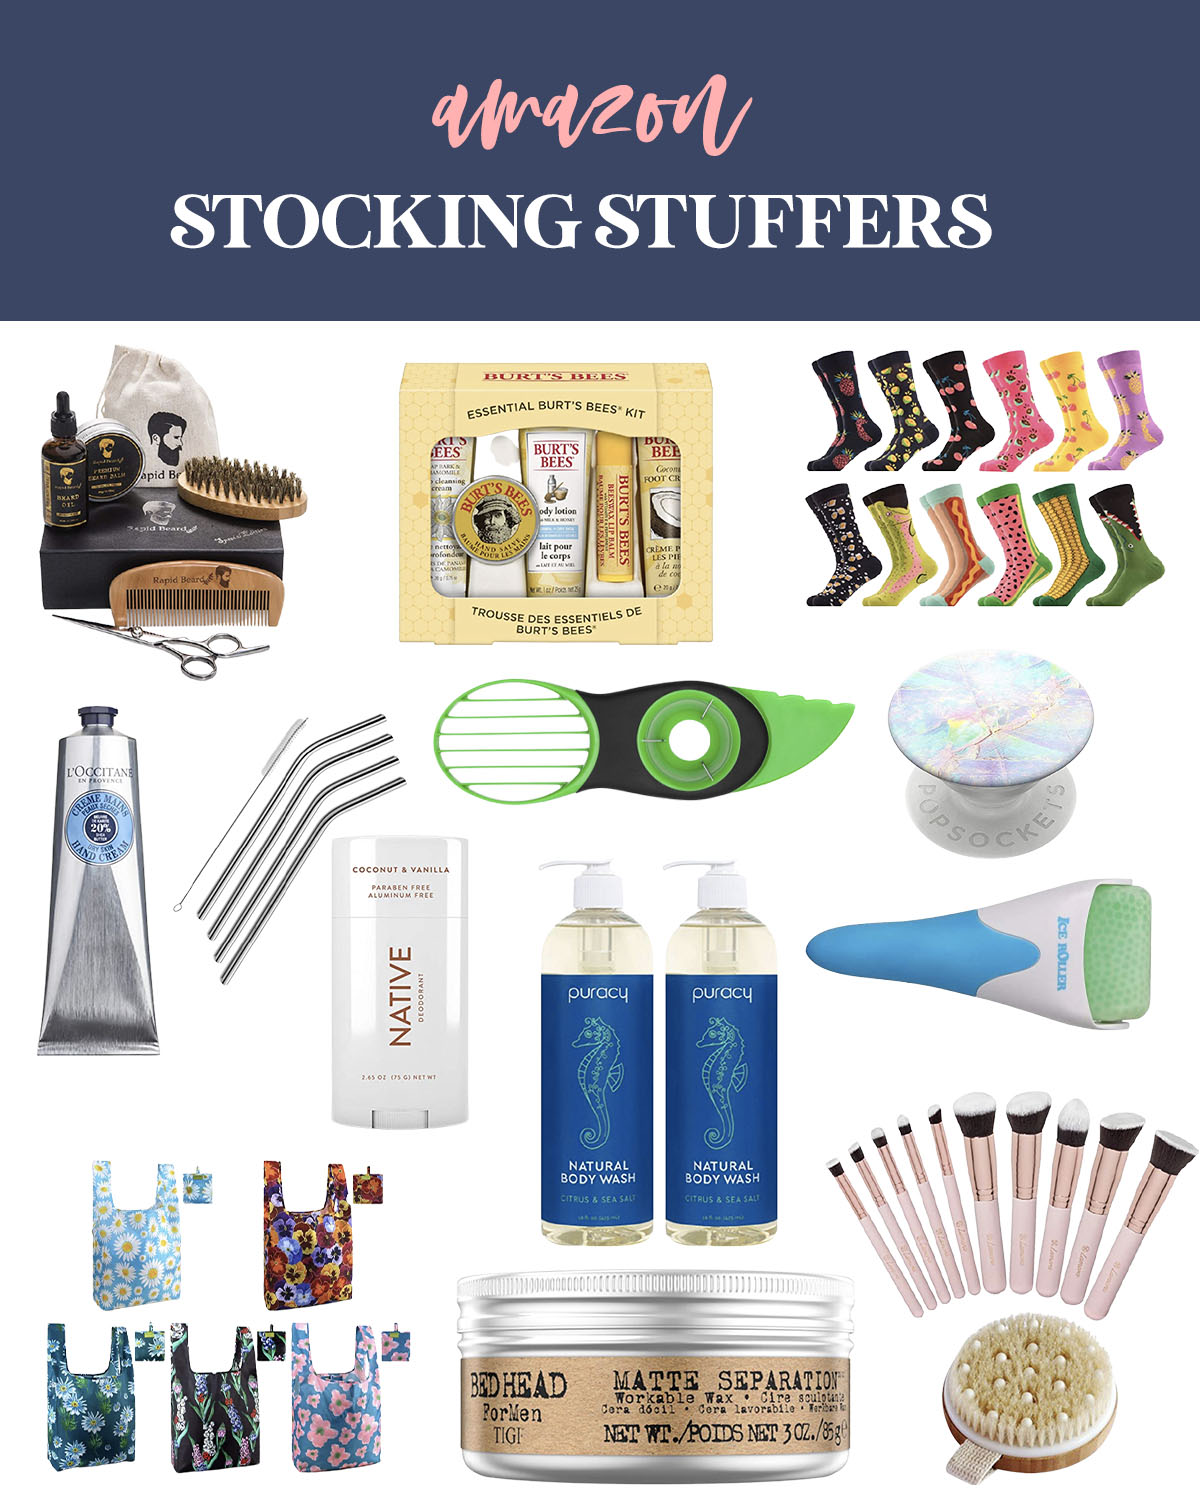 Stocking Stuffers from Amazon by popular Houston life and style blog, Fancy Ashley: collage image of a beard grooming kit, Burts Bees set, metal straws, native deodorant, Bed Head matte separation wax, reusable shopping bags, pop socket, crazy socks, avocado cutter, L'Occitane hand cream, makeup brush set, ice roller, and body scrub brush.